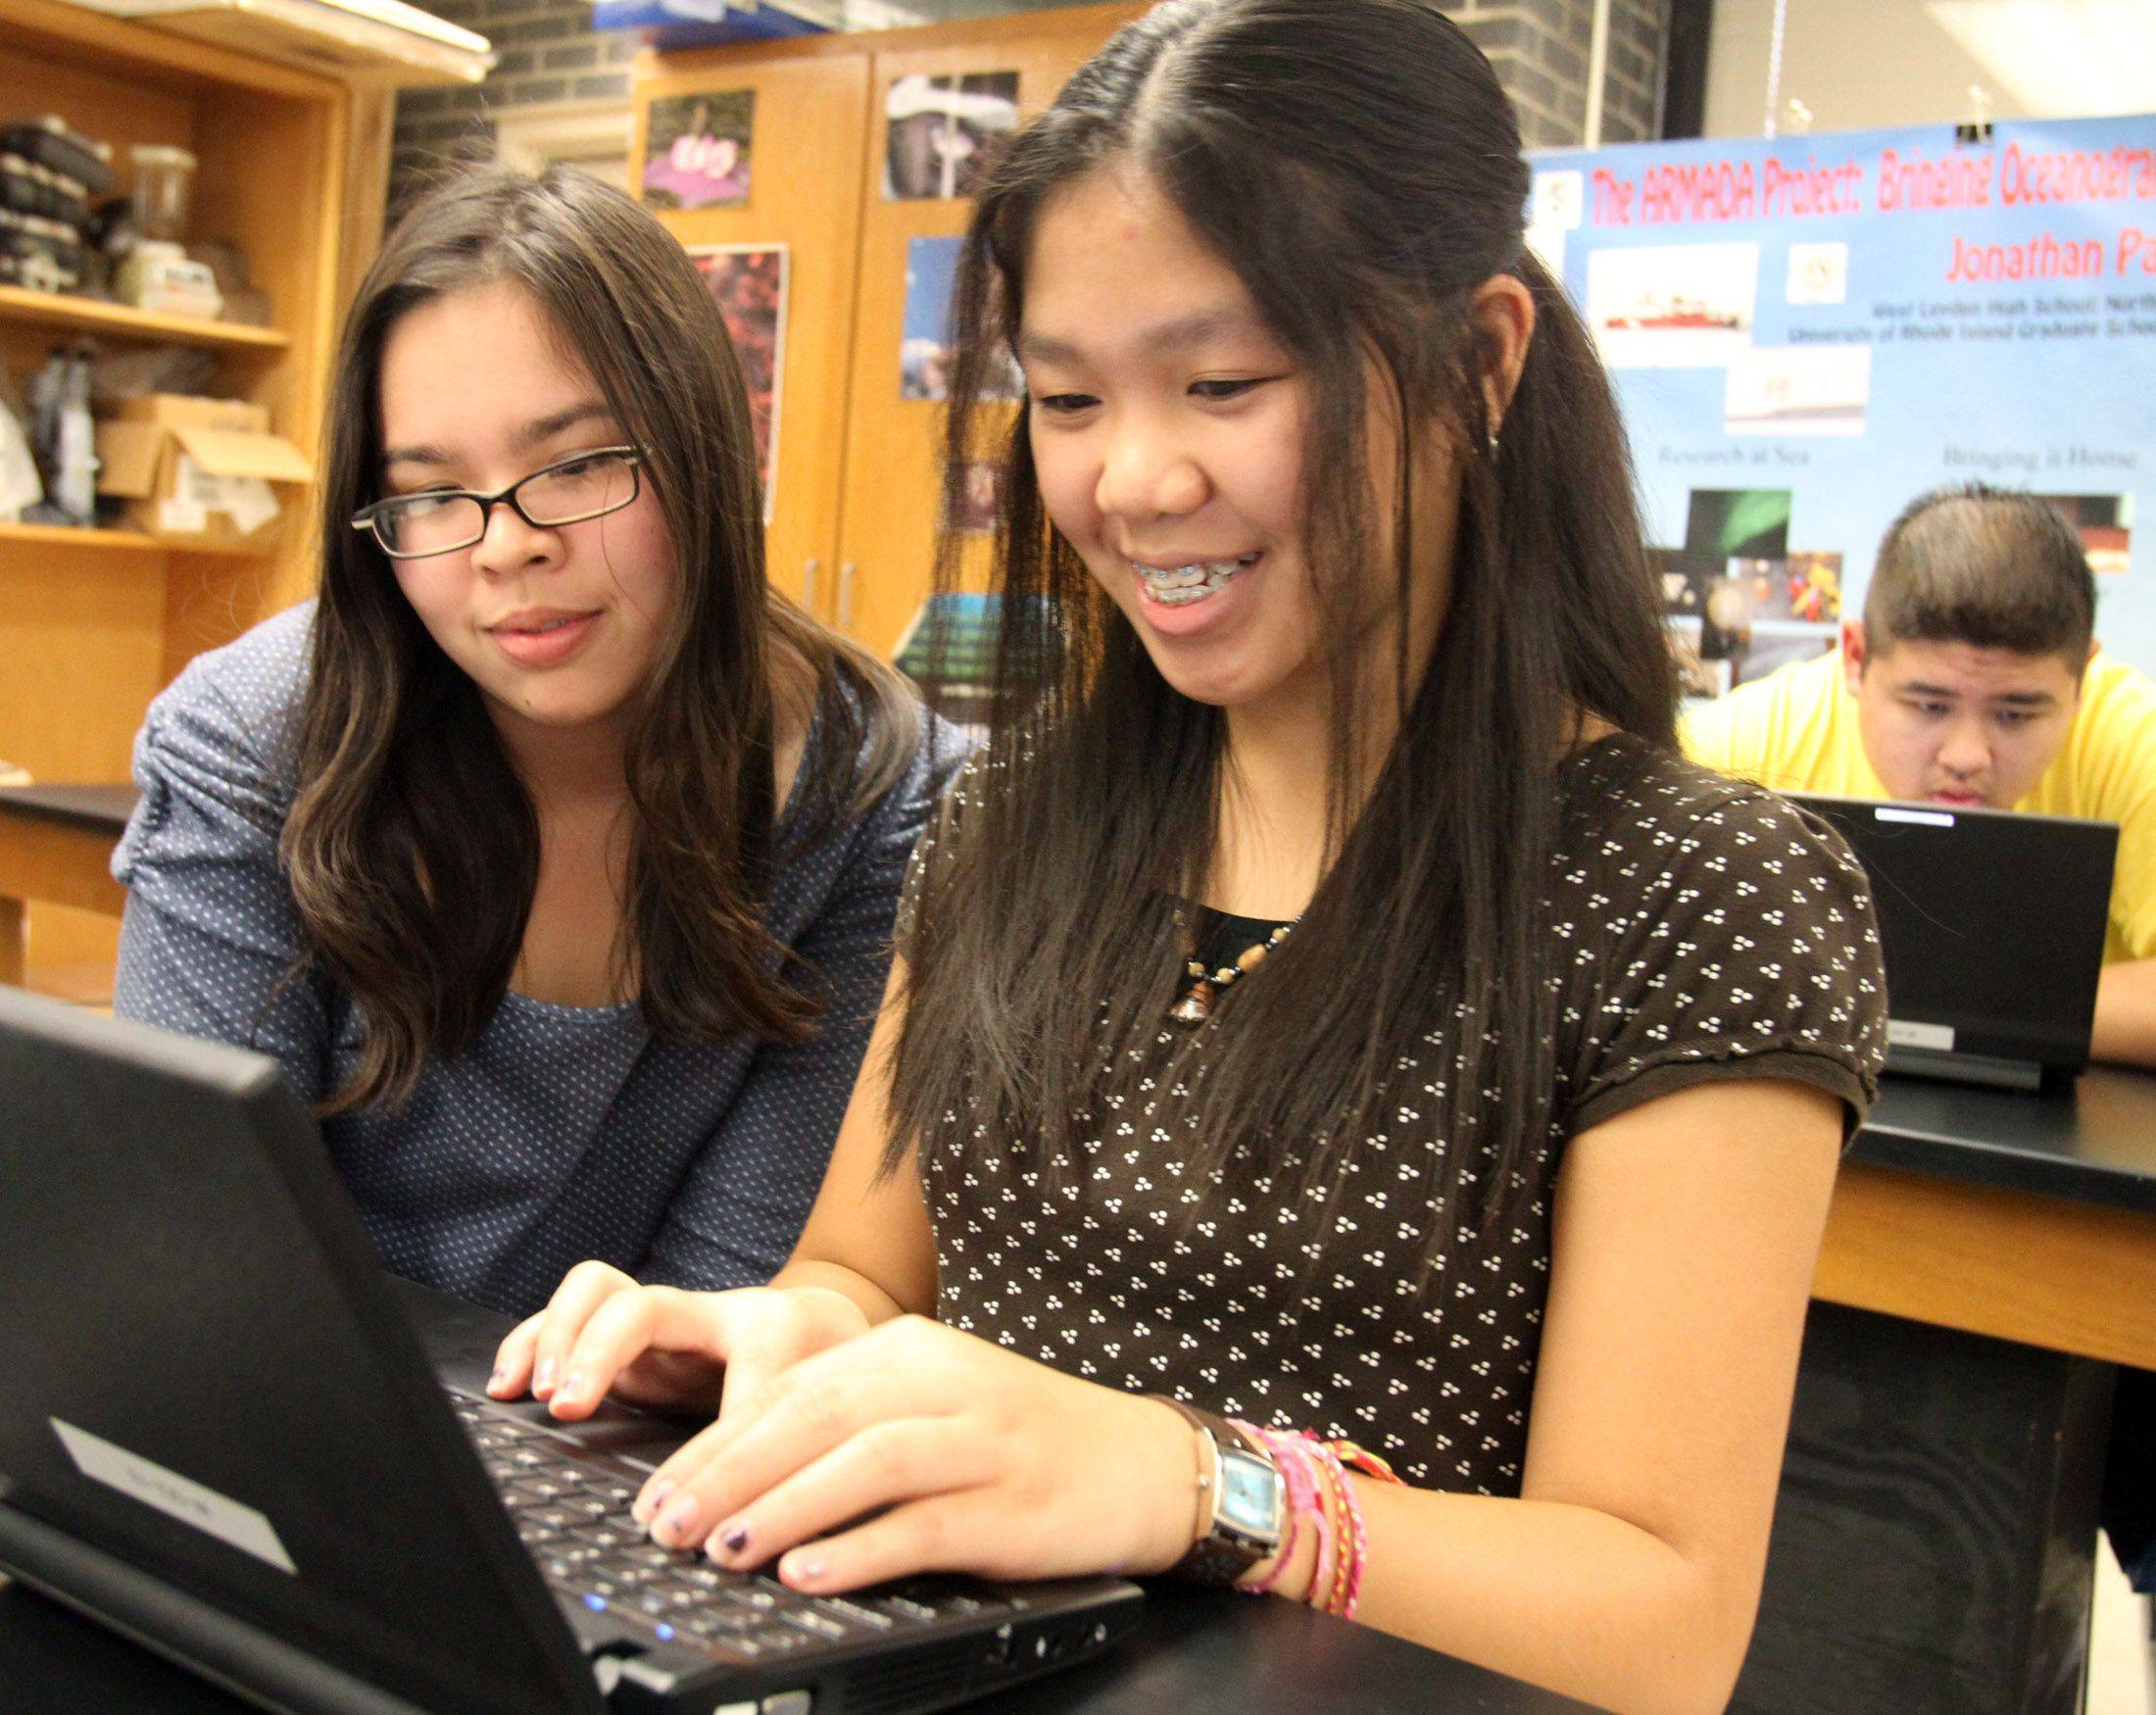 Deanna Gonzalez, a junior at West Leyden High School in Northlake, left, mentors freshman Jenine Agoncillo during a required extra period for freshmen after school.